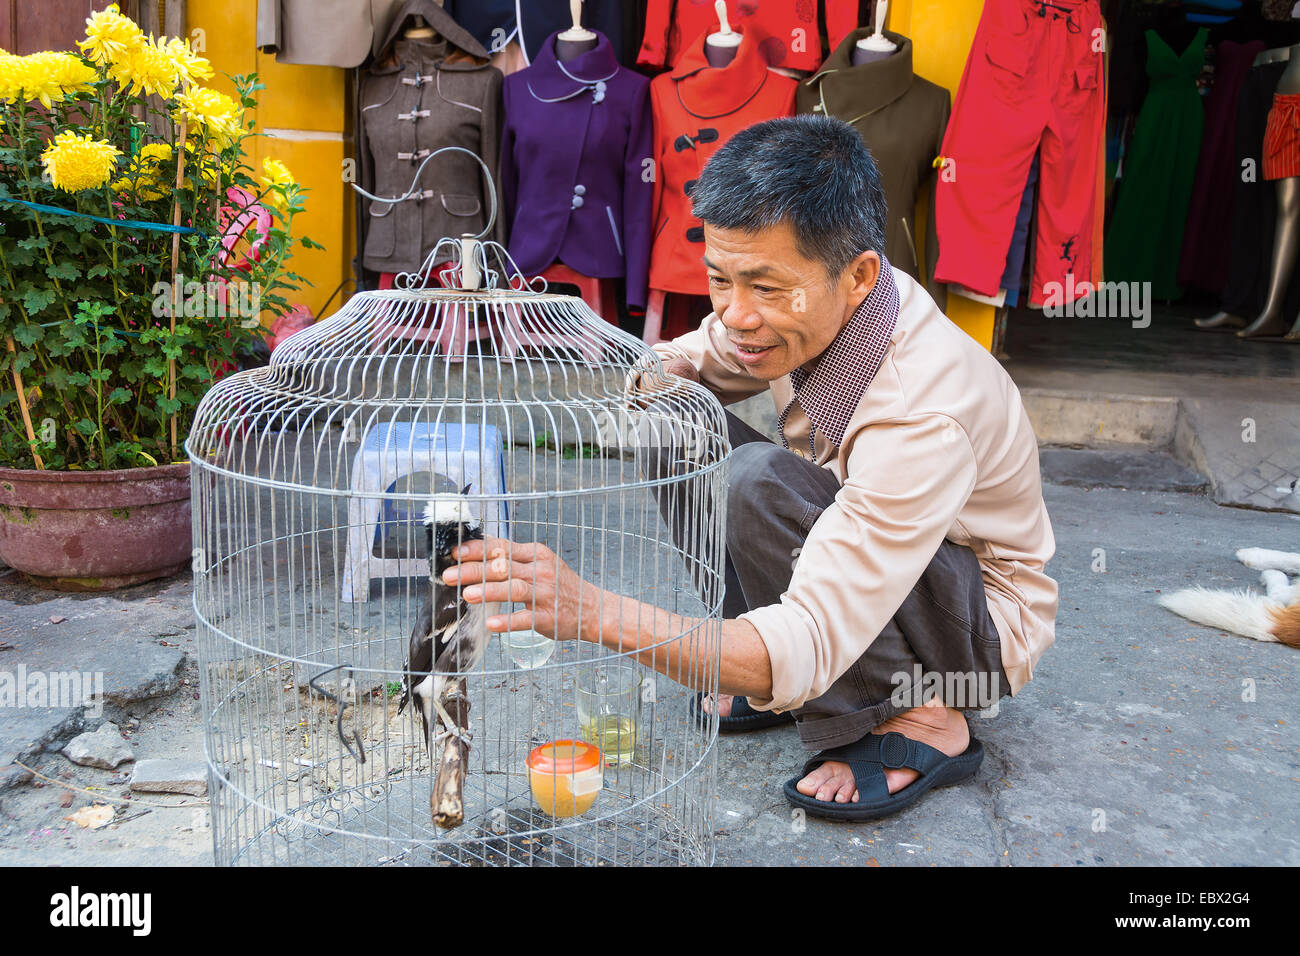 Disabled amputee man feeding caged bird in Hoi An Vietnam - Stock Image